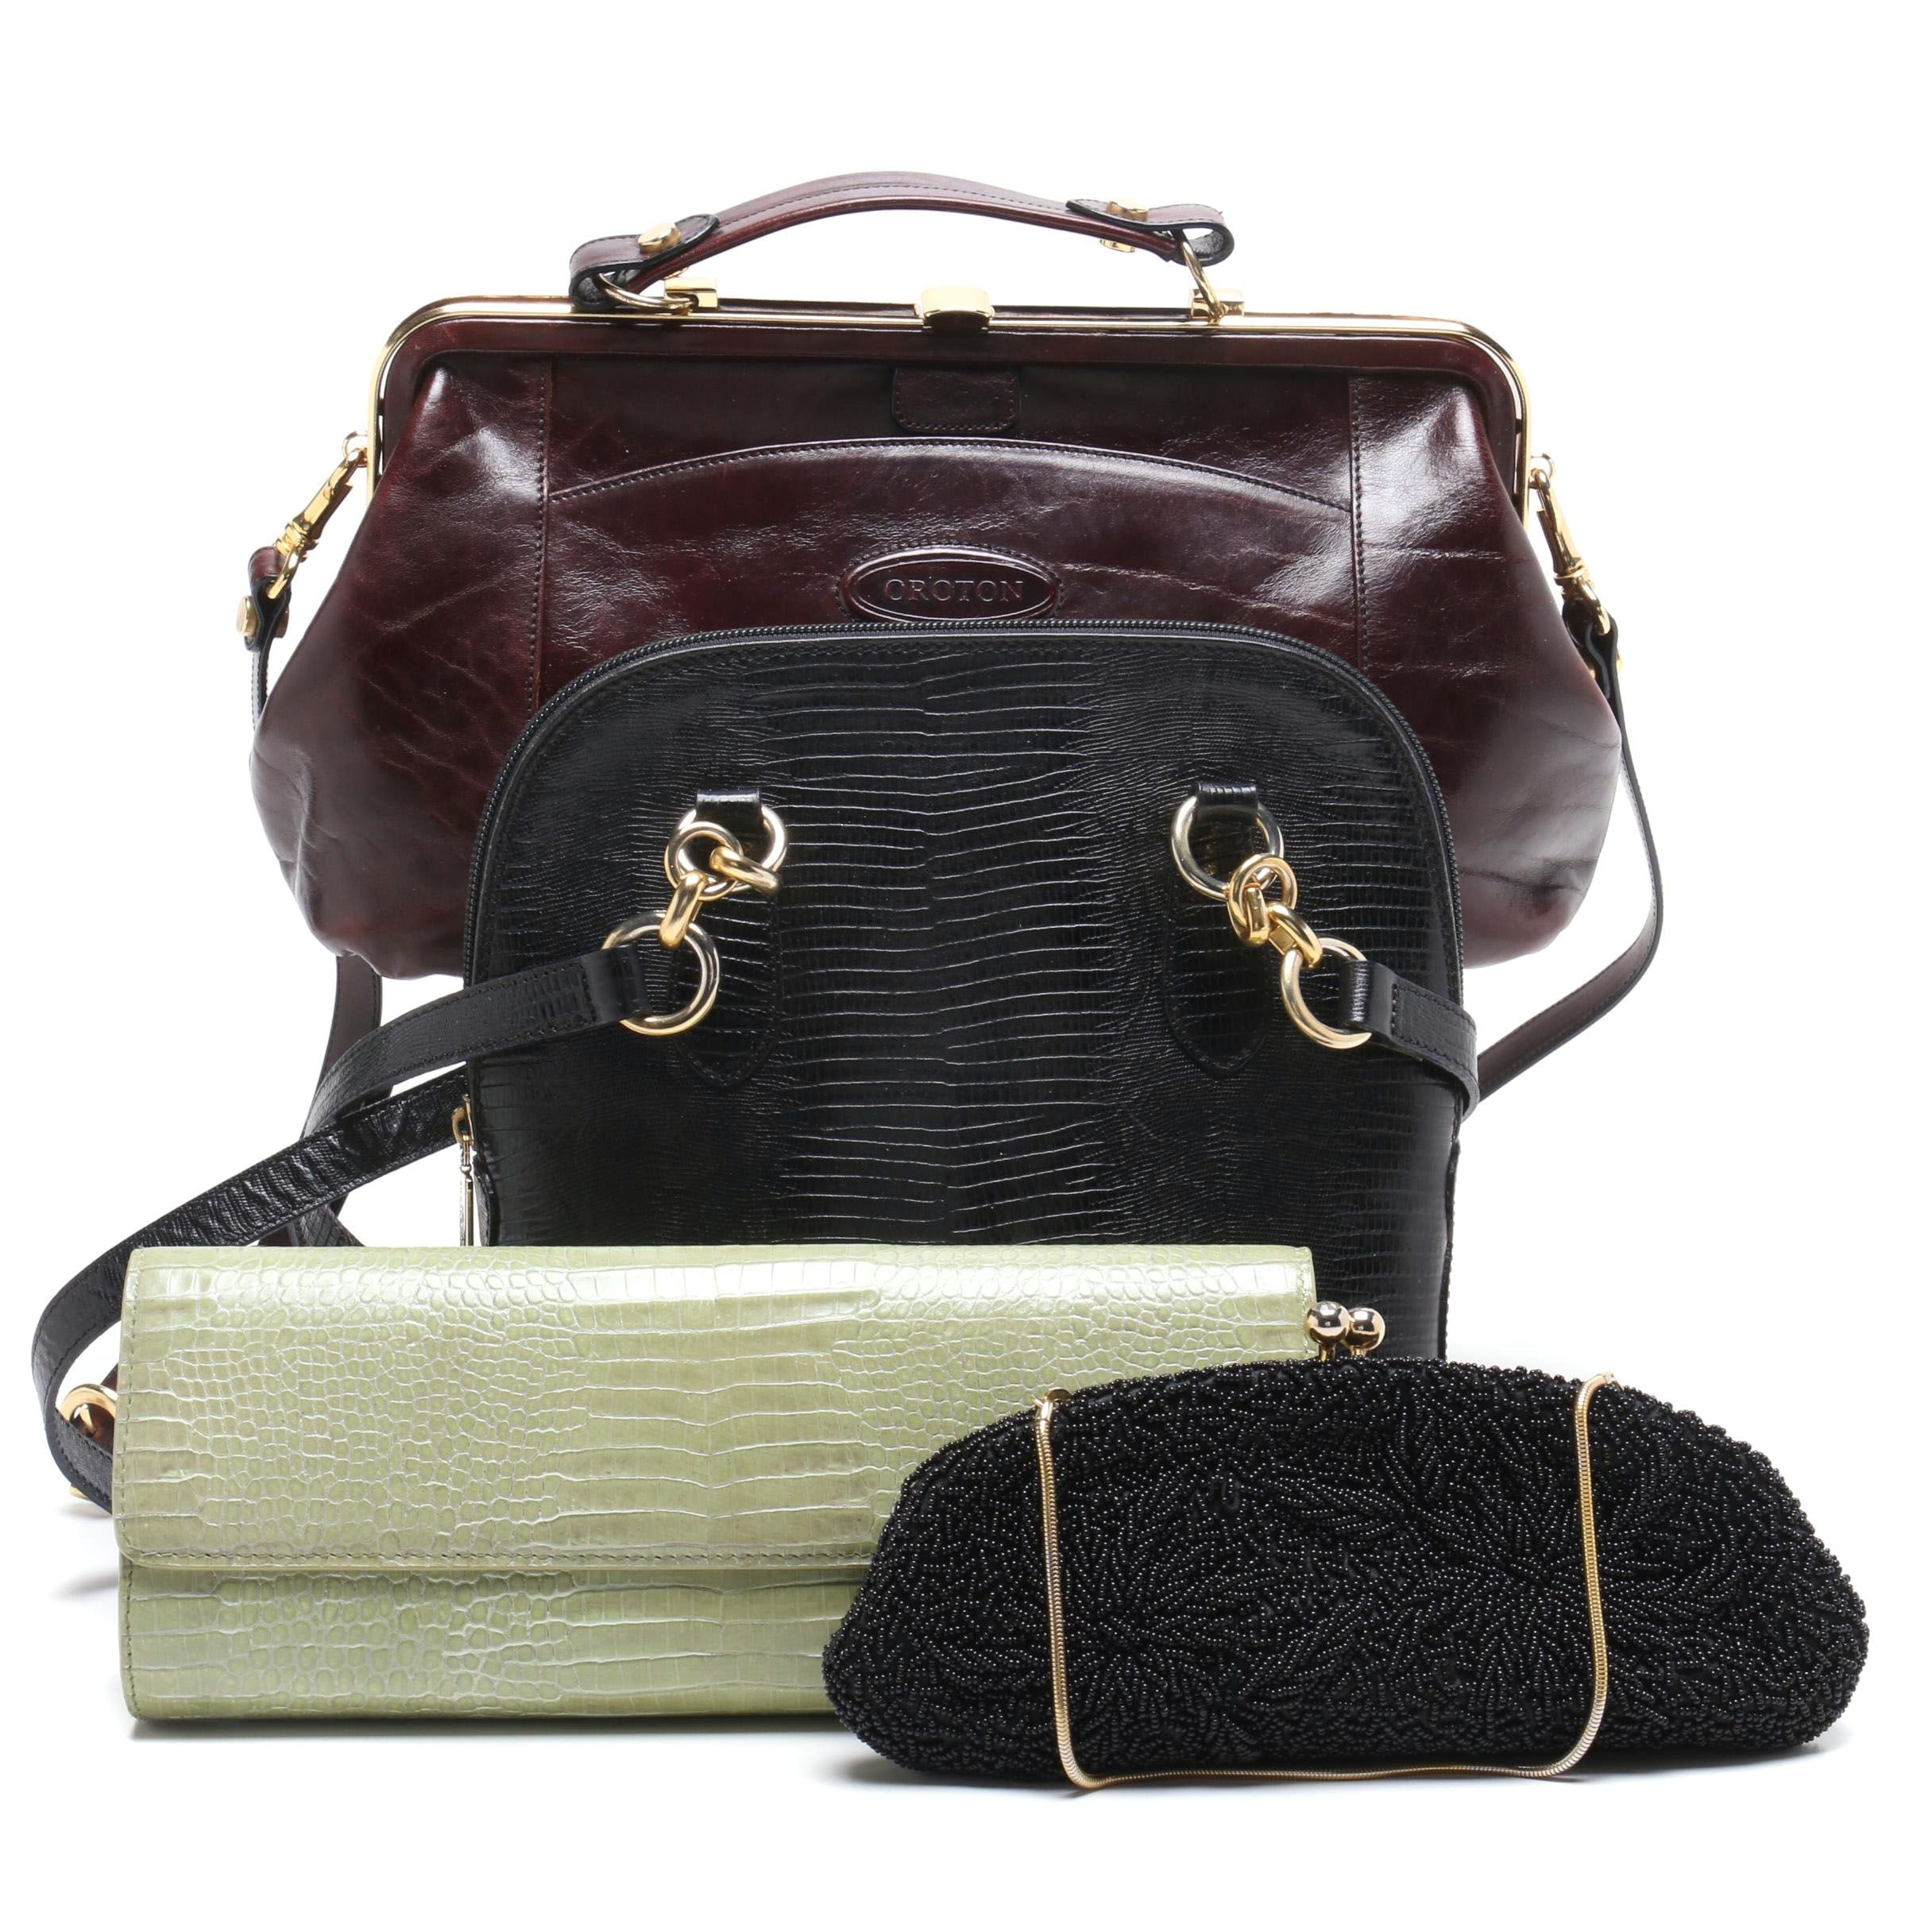 Vintage Oroton Brown Leather Satchel and Other Handbags